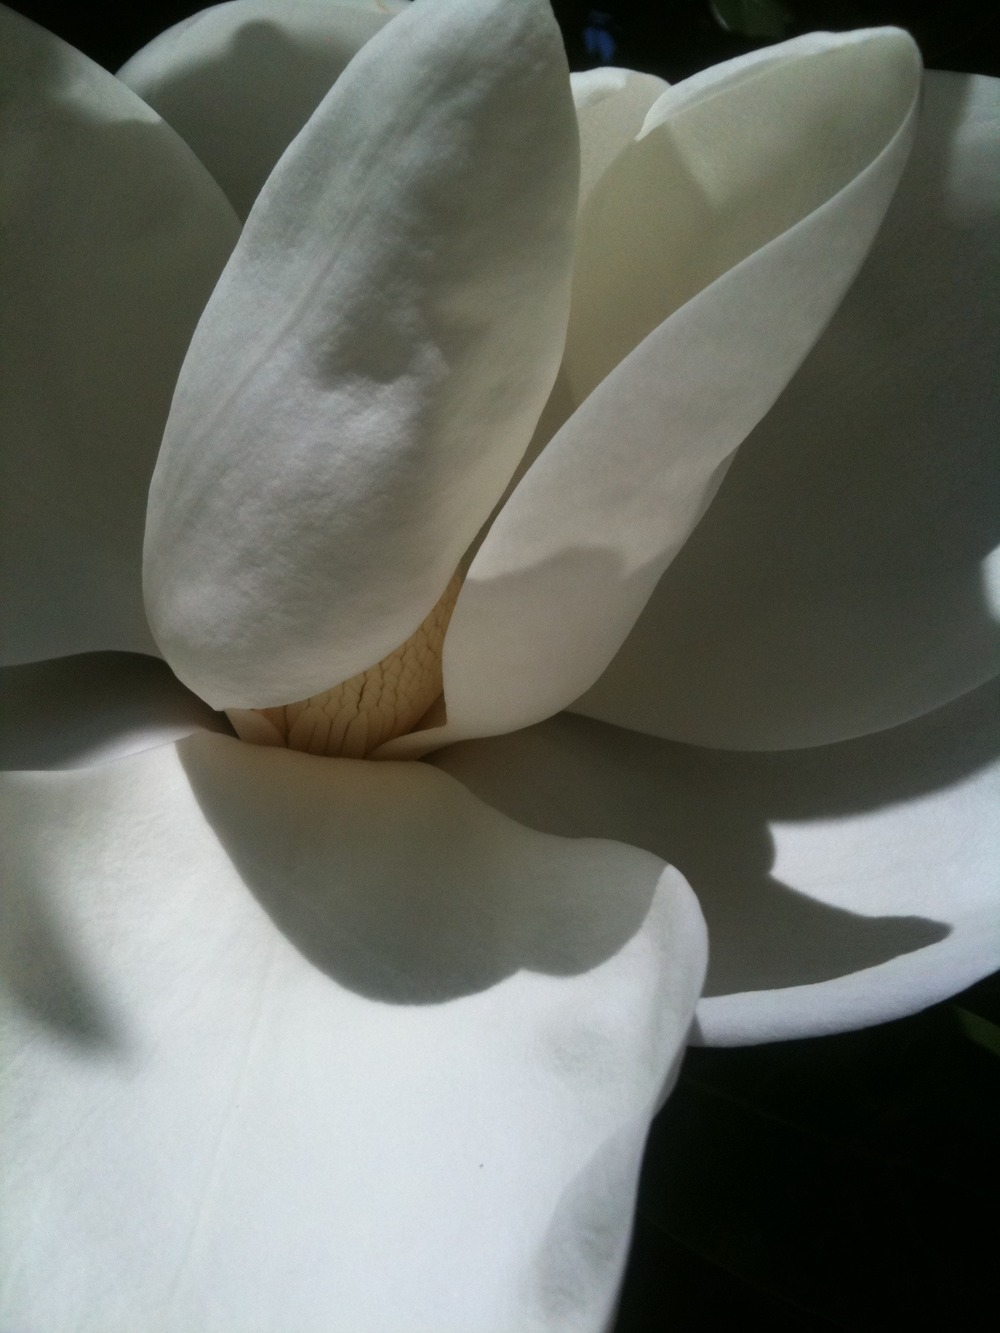 June bloom - Sweet magnolia on campus